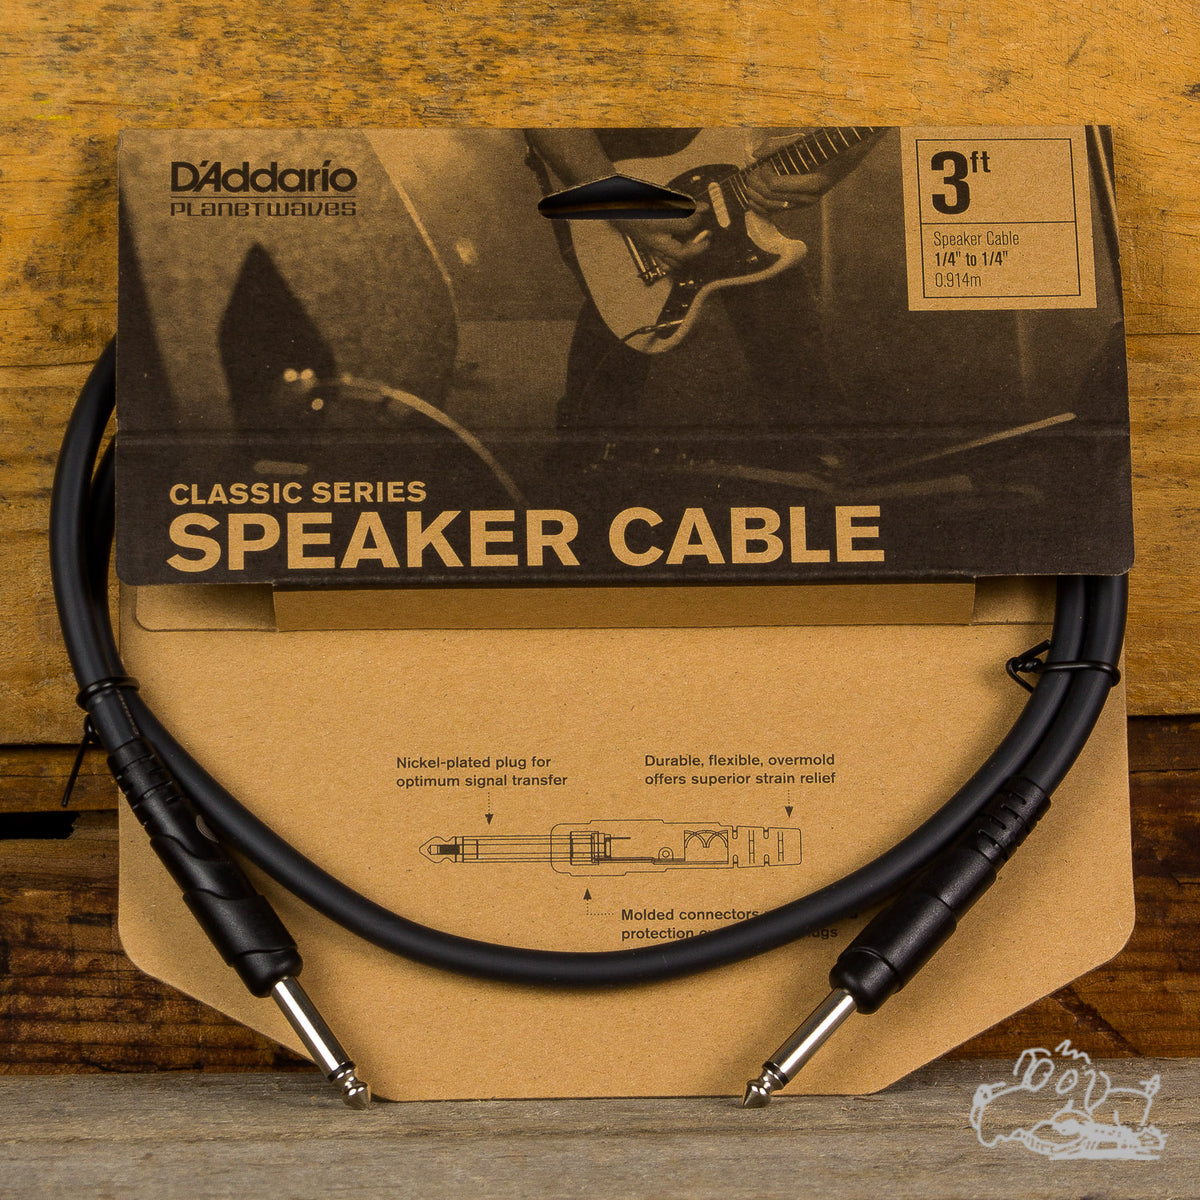 "D'Addario Classic Series 1/4"" to 1/4"" Speaker Cable (Choose a Size)"